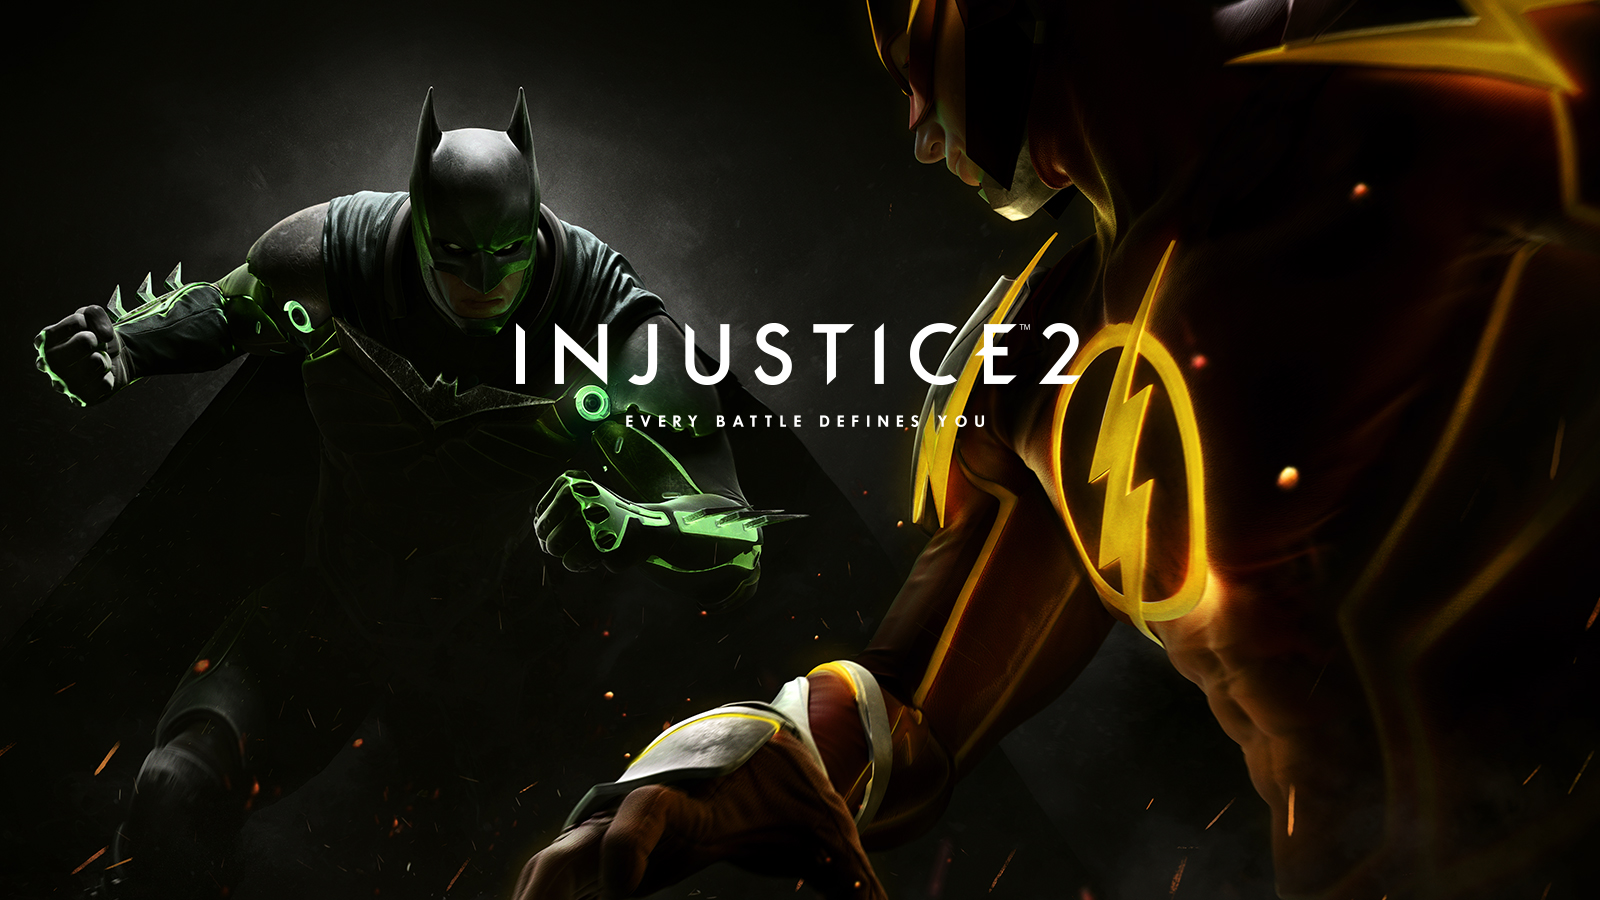 injustice-2-wallpaper-logo-nat-games-test-review